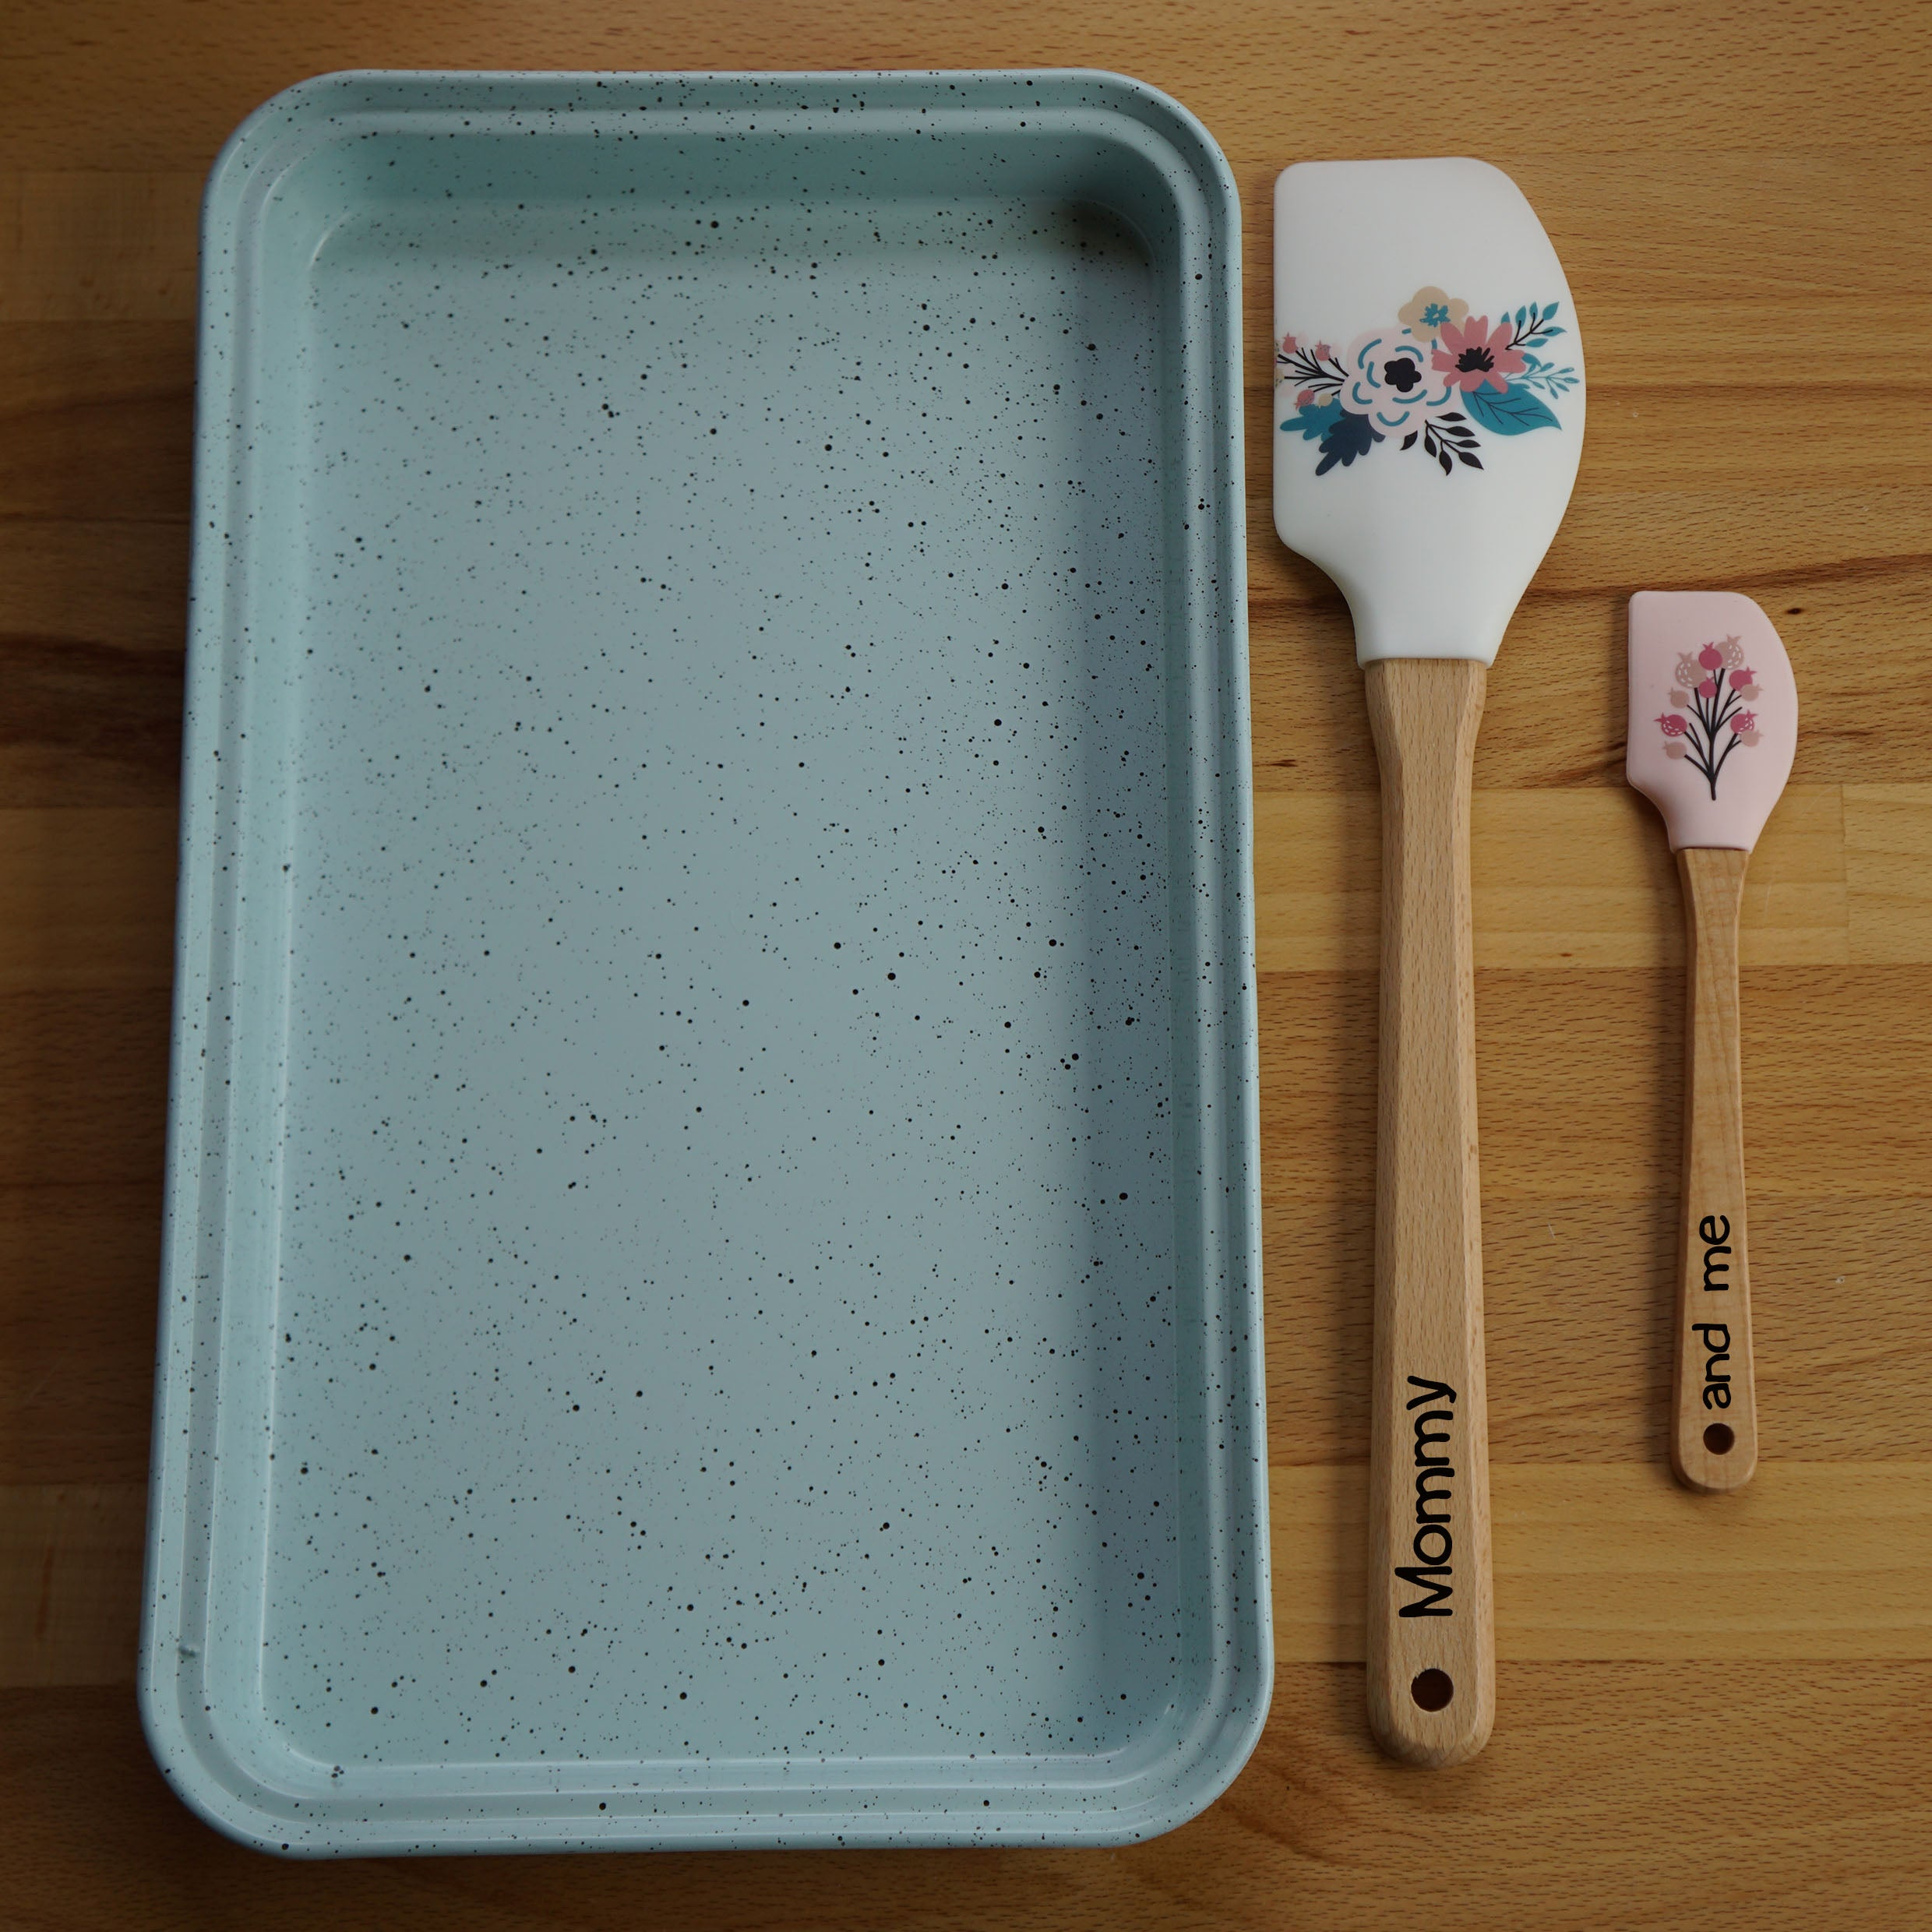 "Mommy & Me - 15"" & 13"" Baking Pan and 2 Personalized Silicone Utensils"